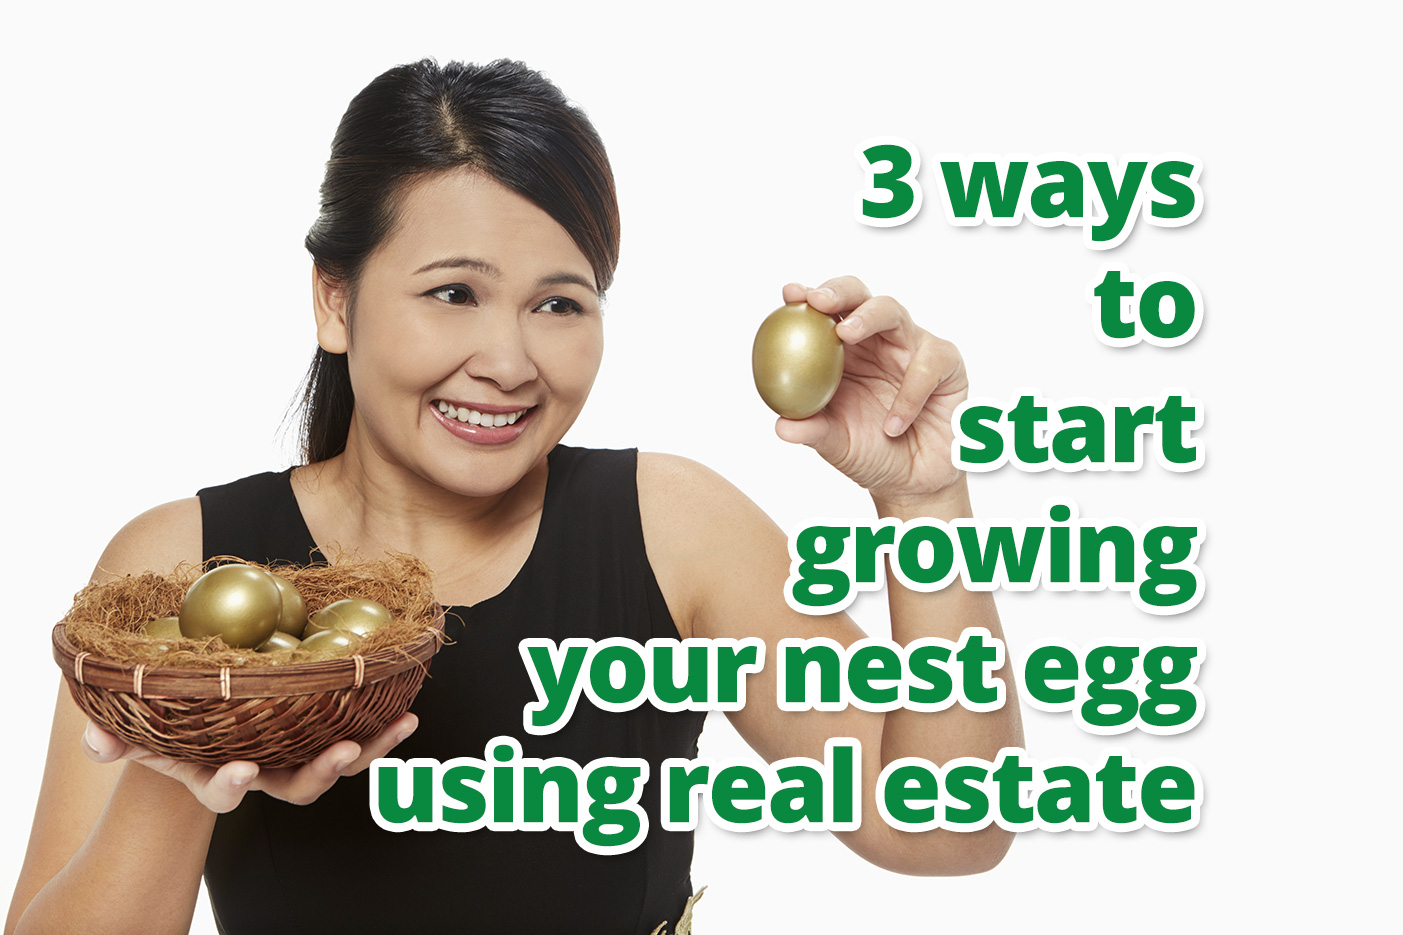 3 ways to start growing your nest egg using real estate